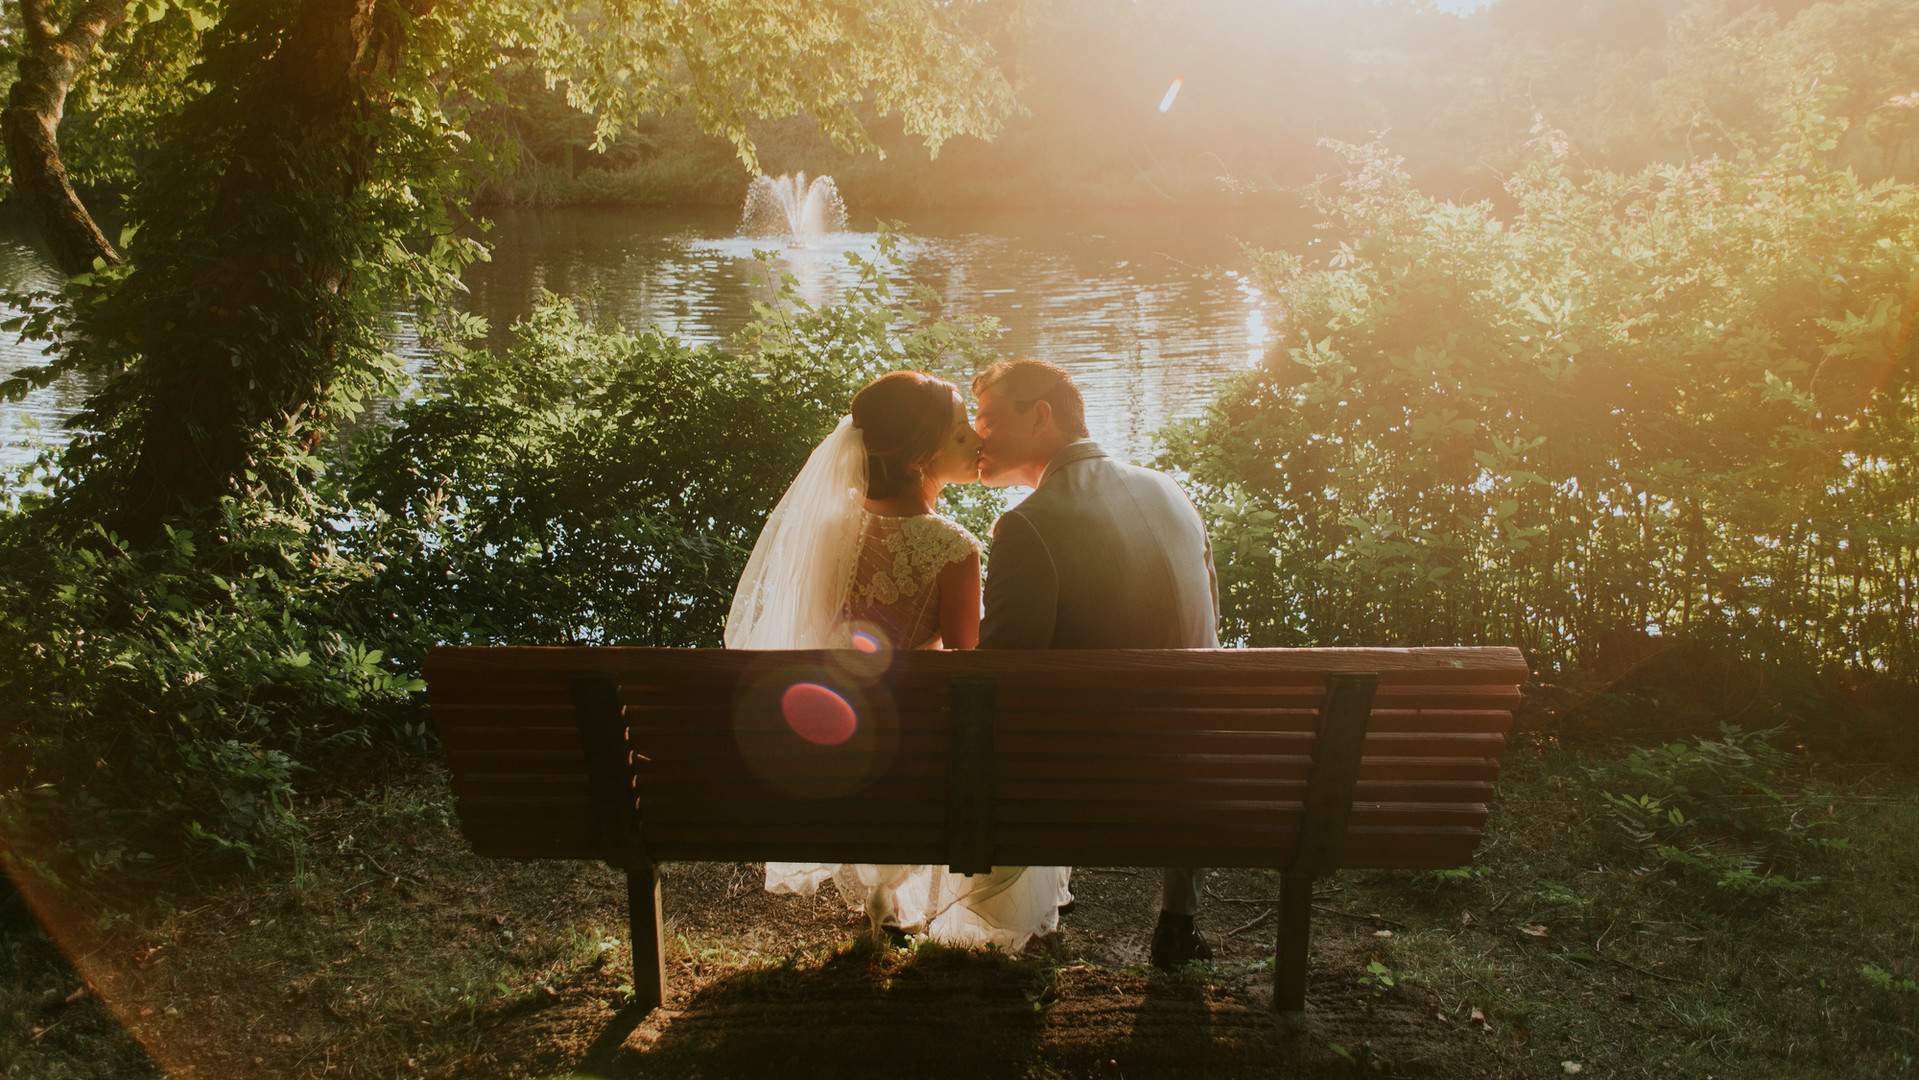 Kiss on a Bench